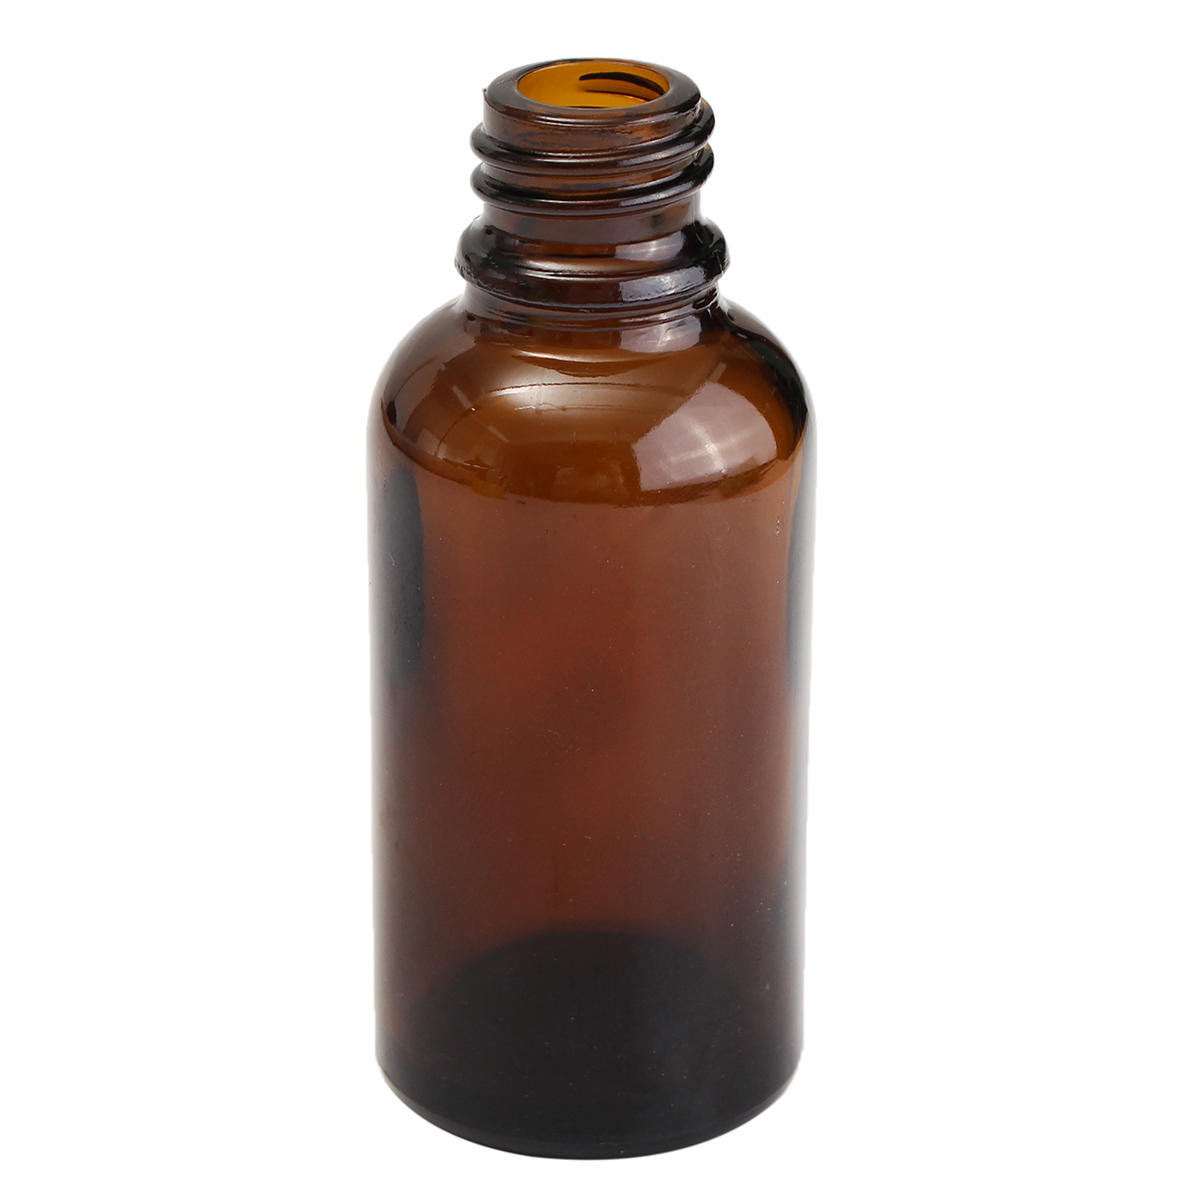 30ml Empty Essential Oil Refillable Bottles Amber Glass Dropper Travel Vials Makeup Skin Care Tools - 5